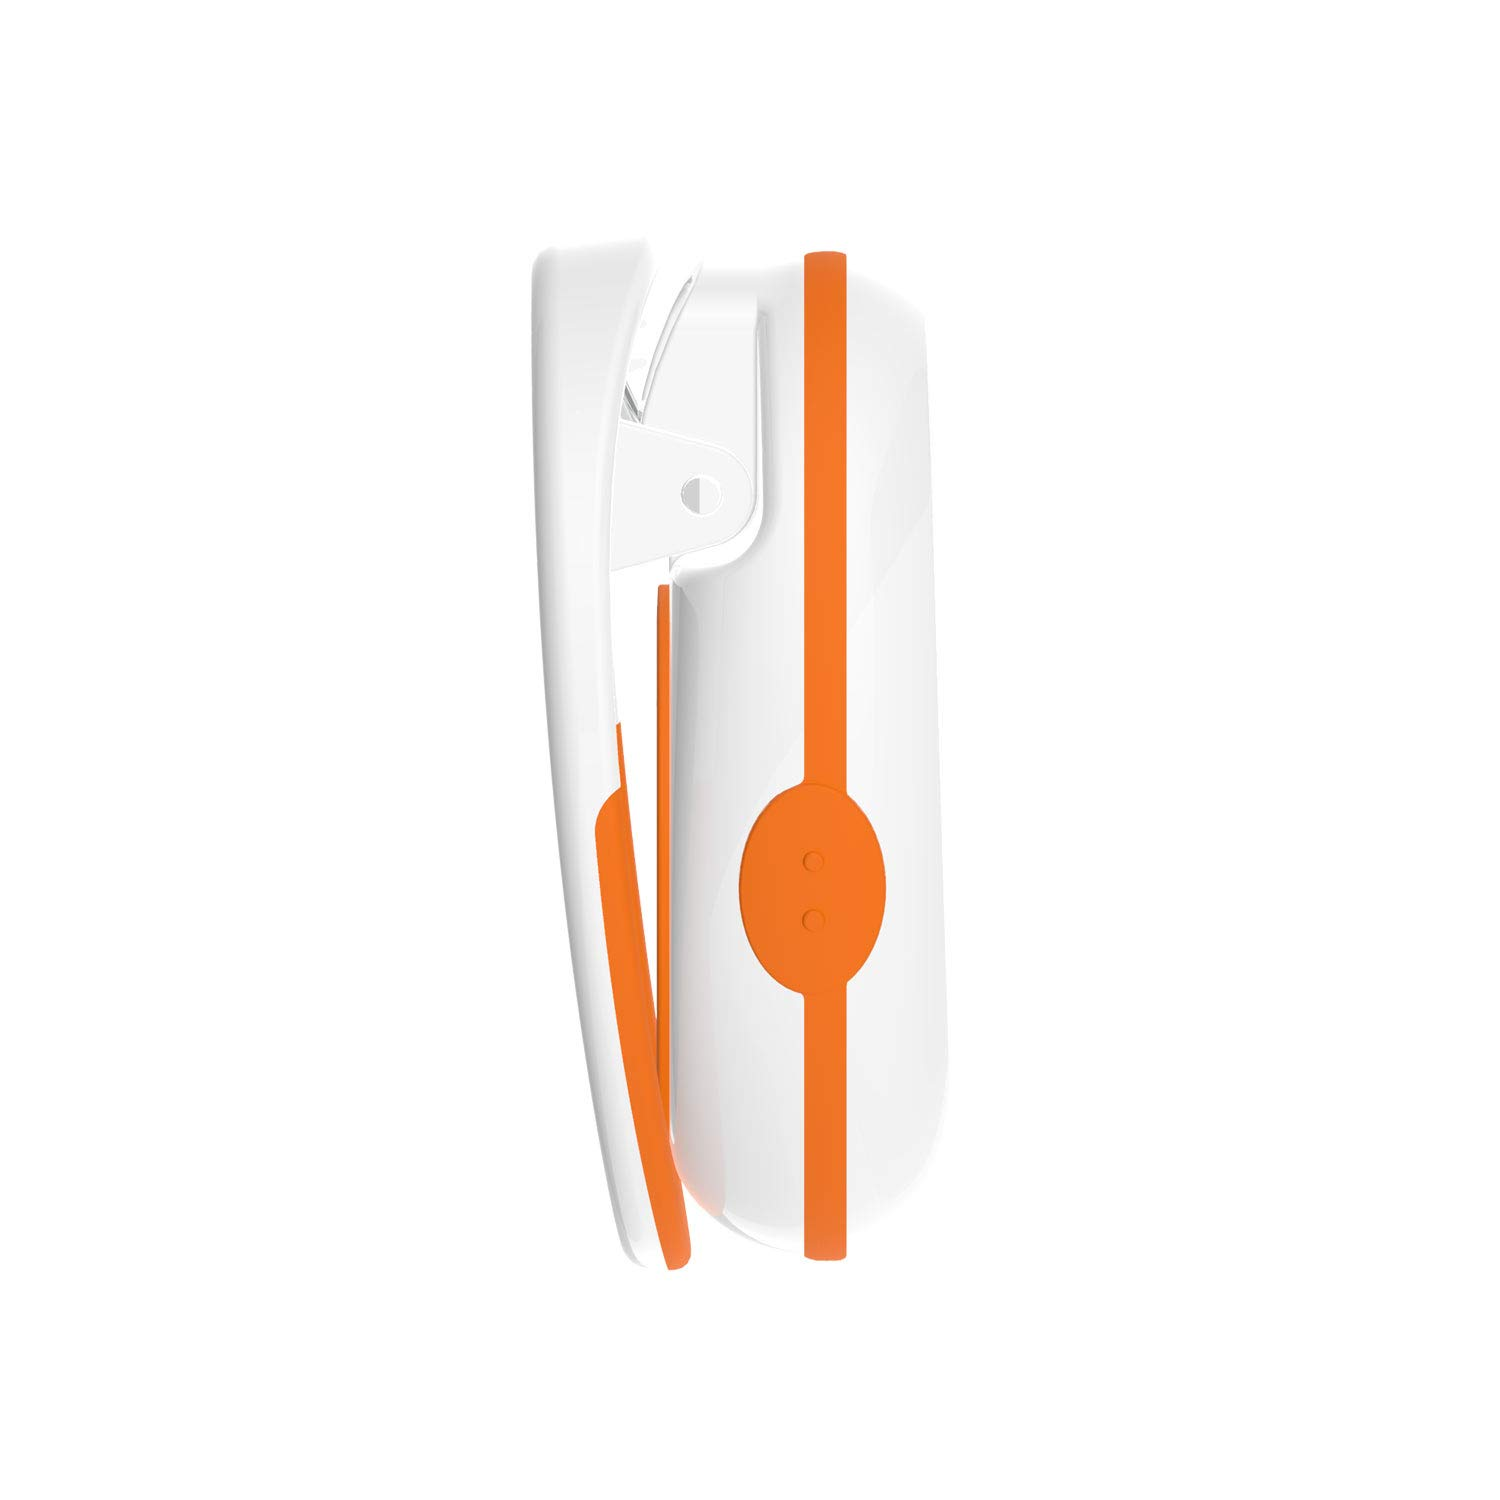 Levana Oma Sense Portable Baby Breathing Movement Monitor with Vibrations and Audible Alerts Designed to Stimulate Baby and Alert Parents by Levana (Image #6)